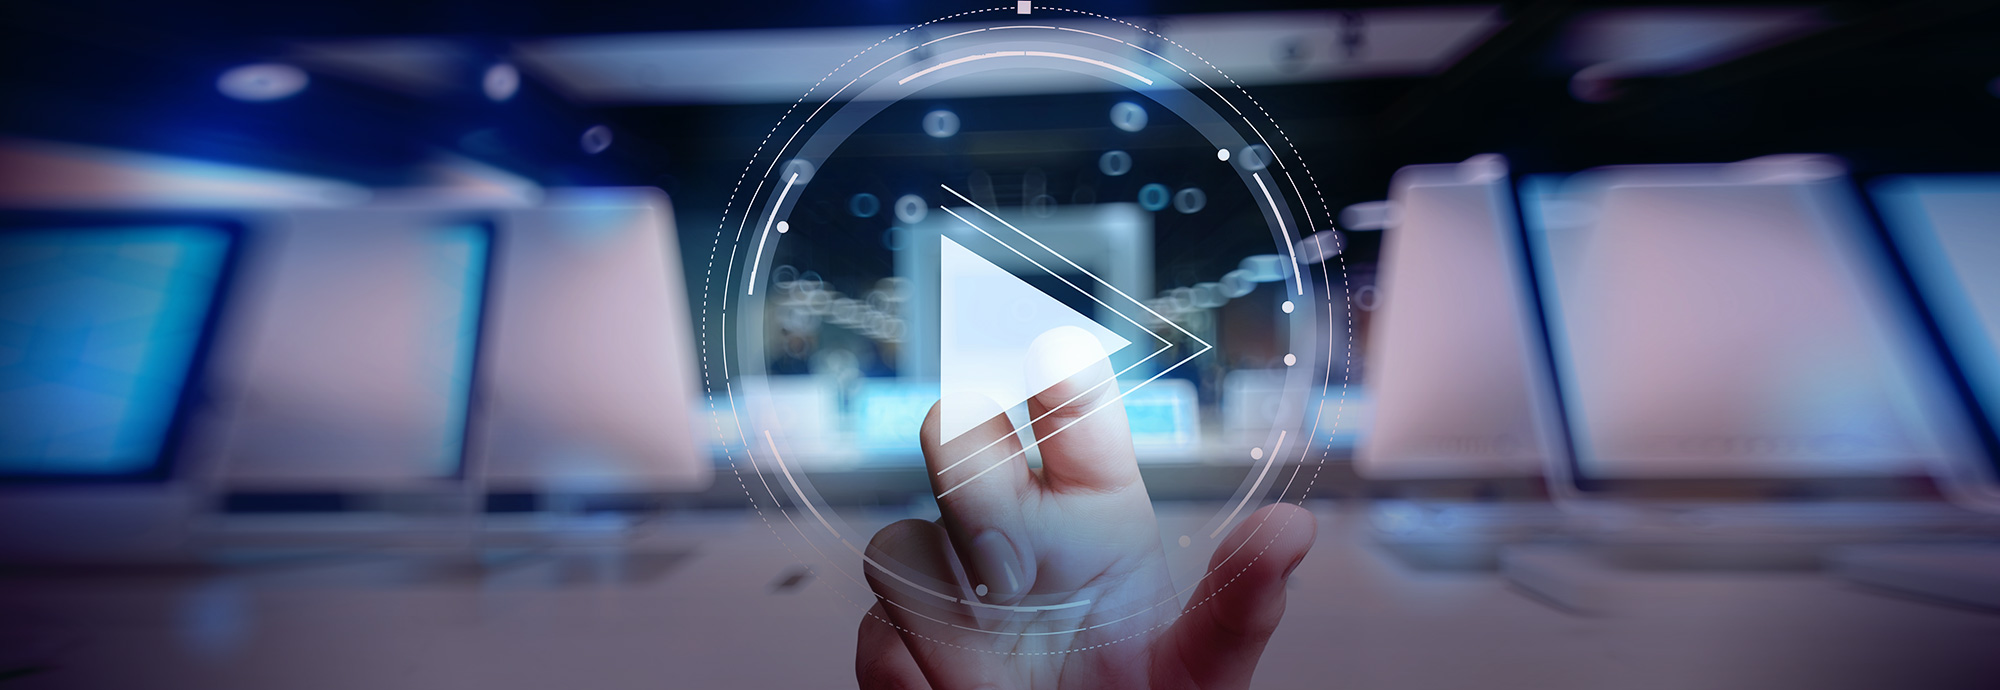 Mobile video technology or framework